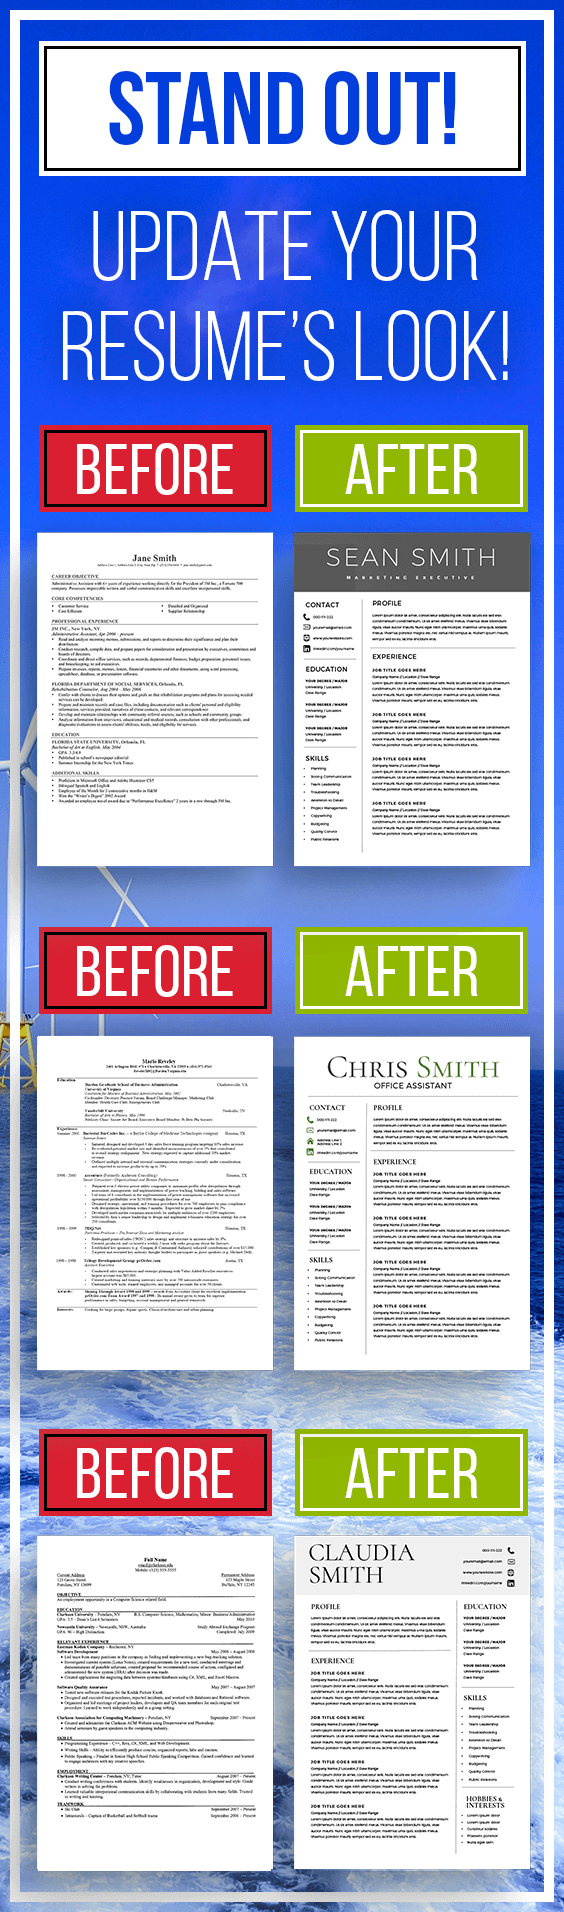 Great Update Your Resumeu0027s Look! Resume Update, Post Resume, Resume Upload, Update  My  Updating My Resume